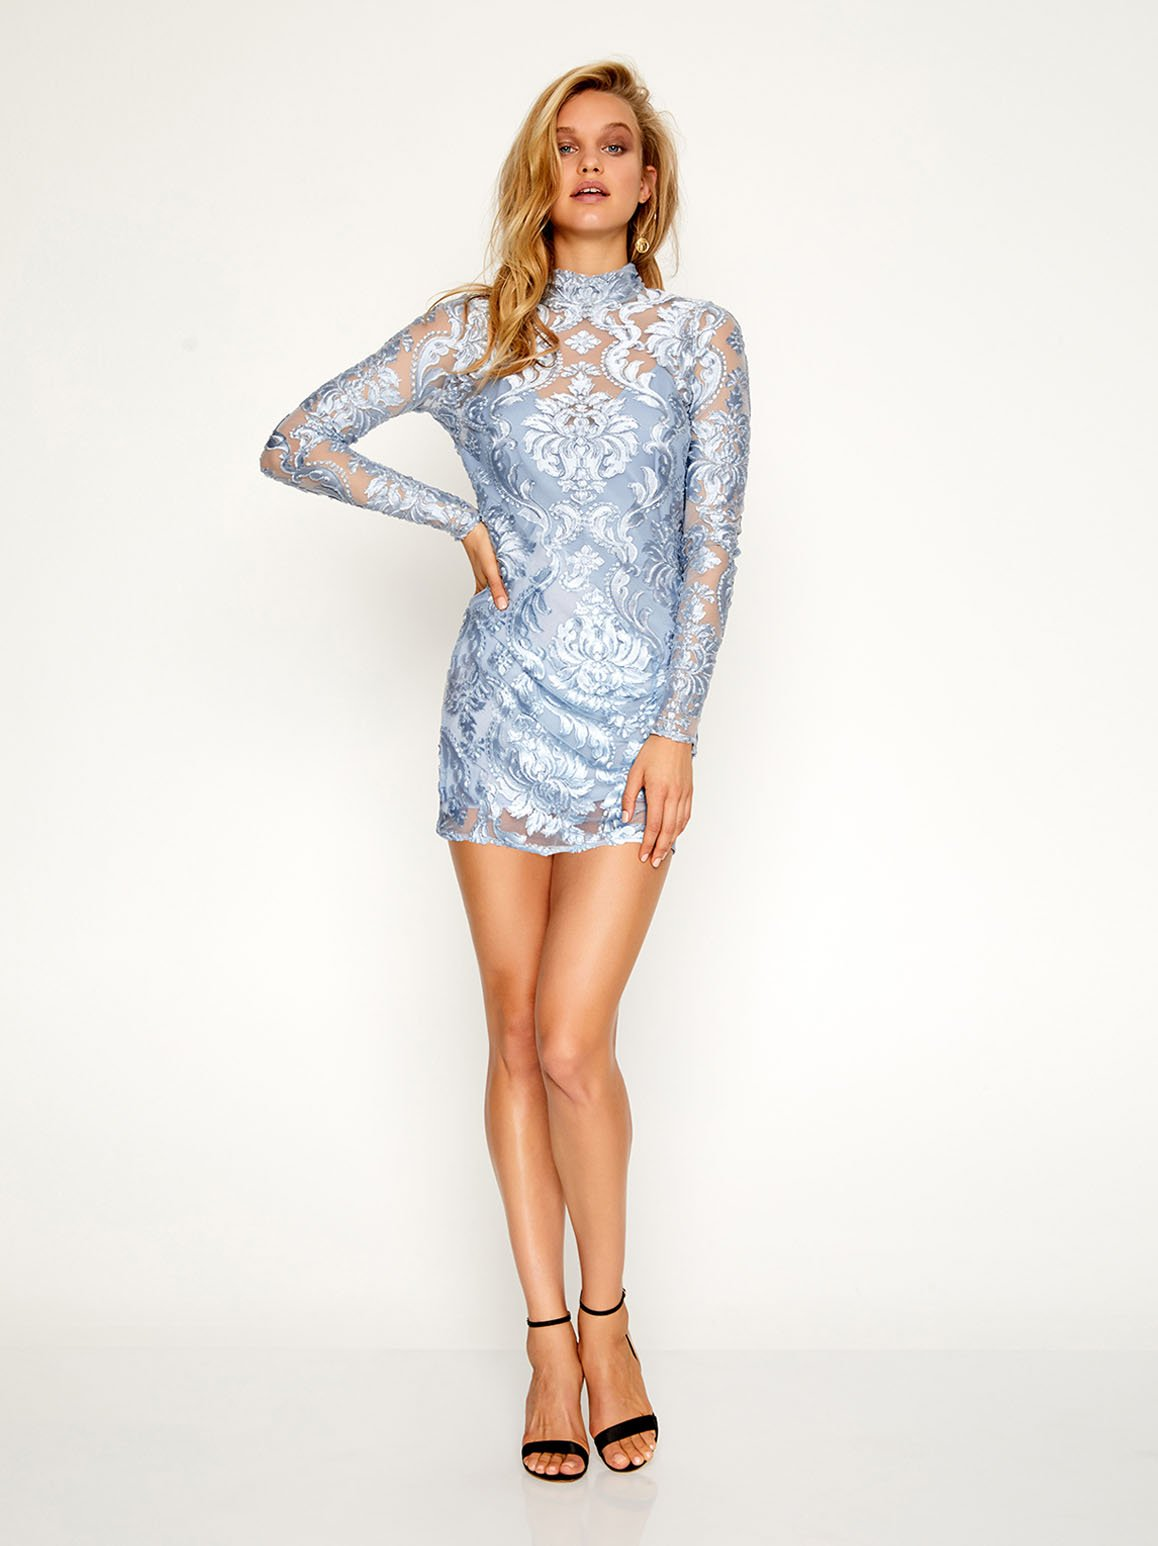 ELECTRIC AVENUE DRESS